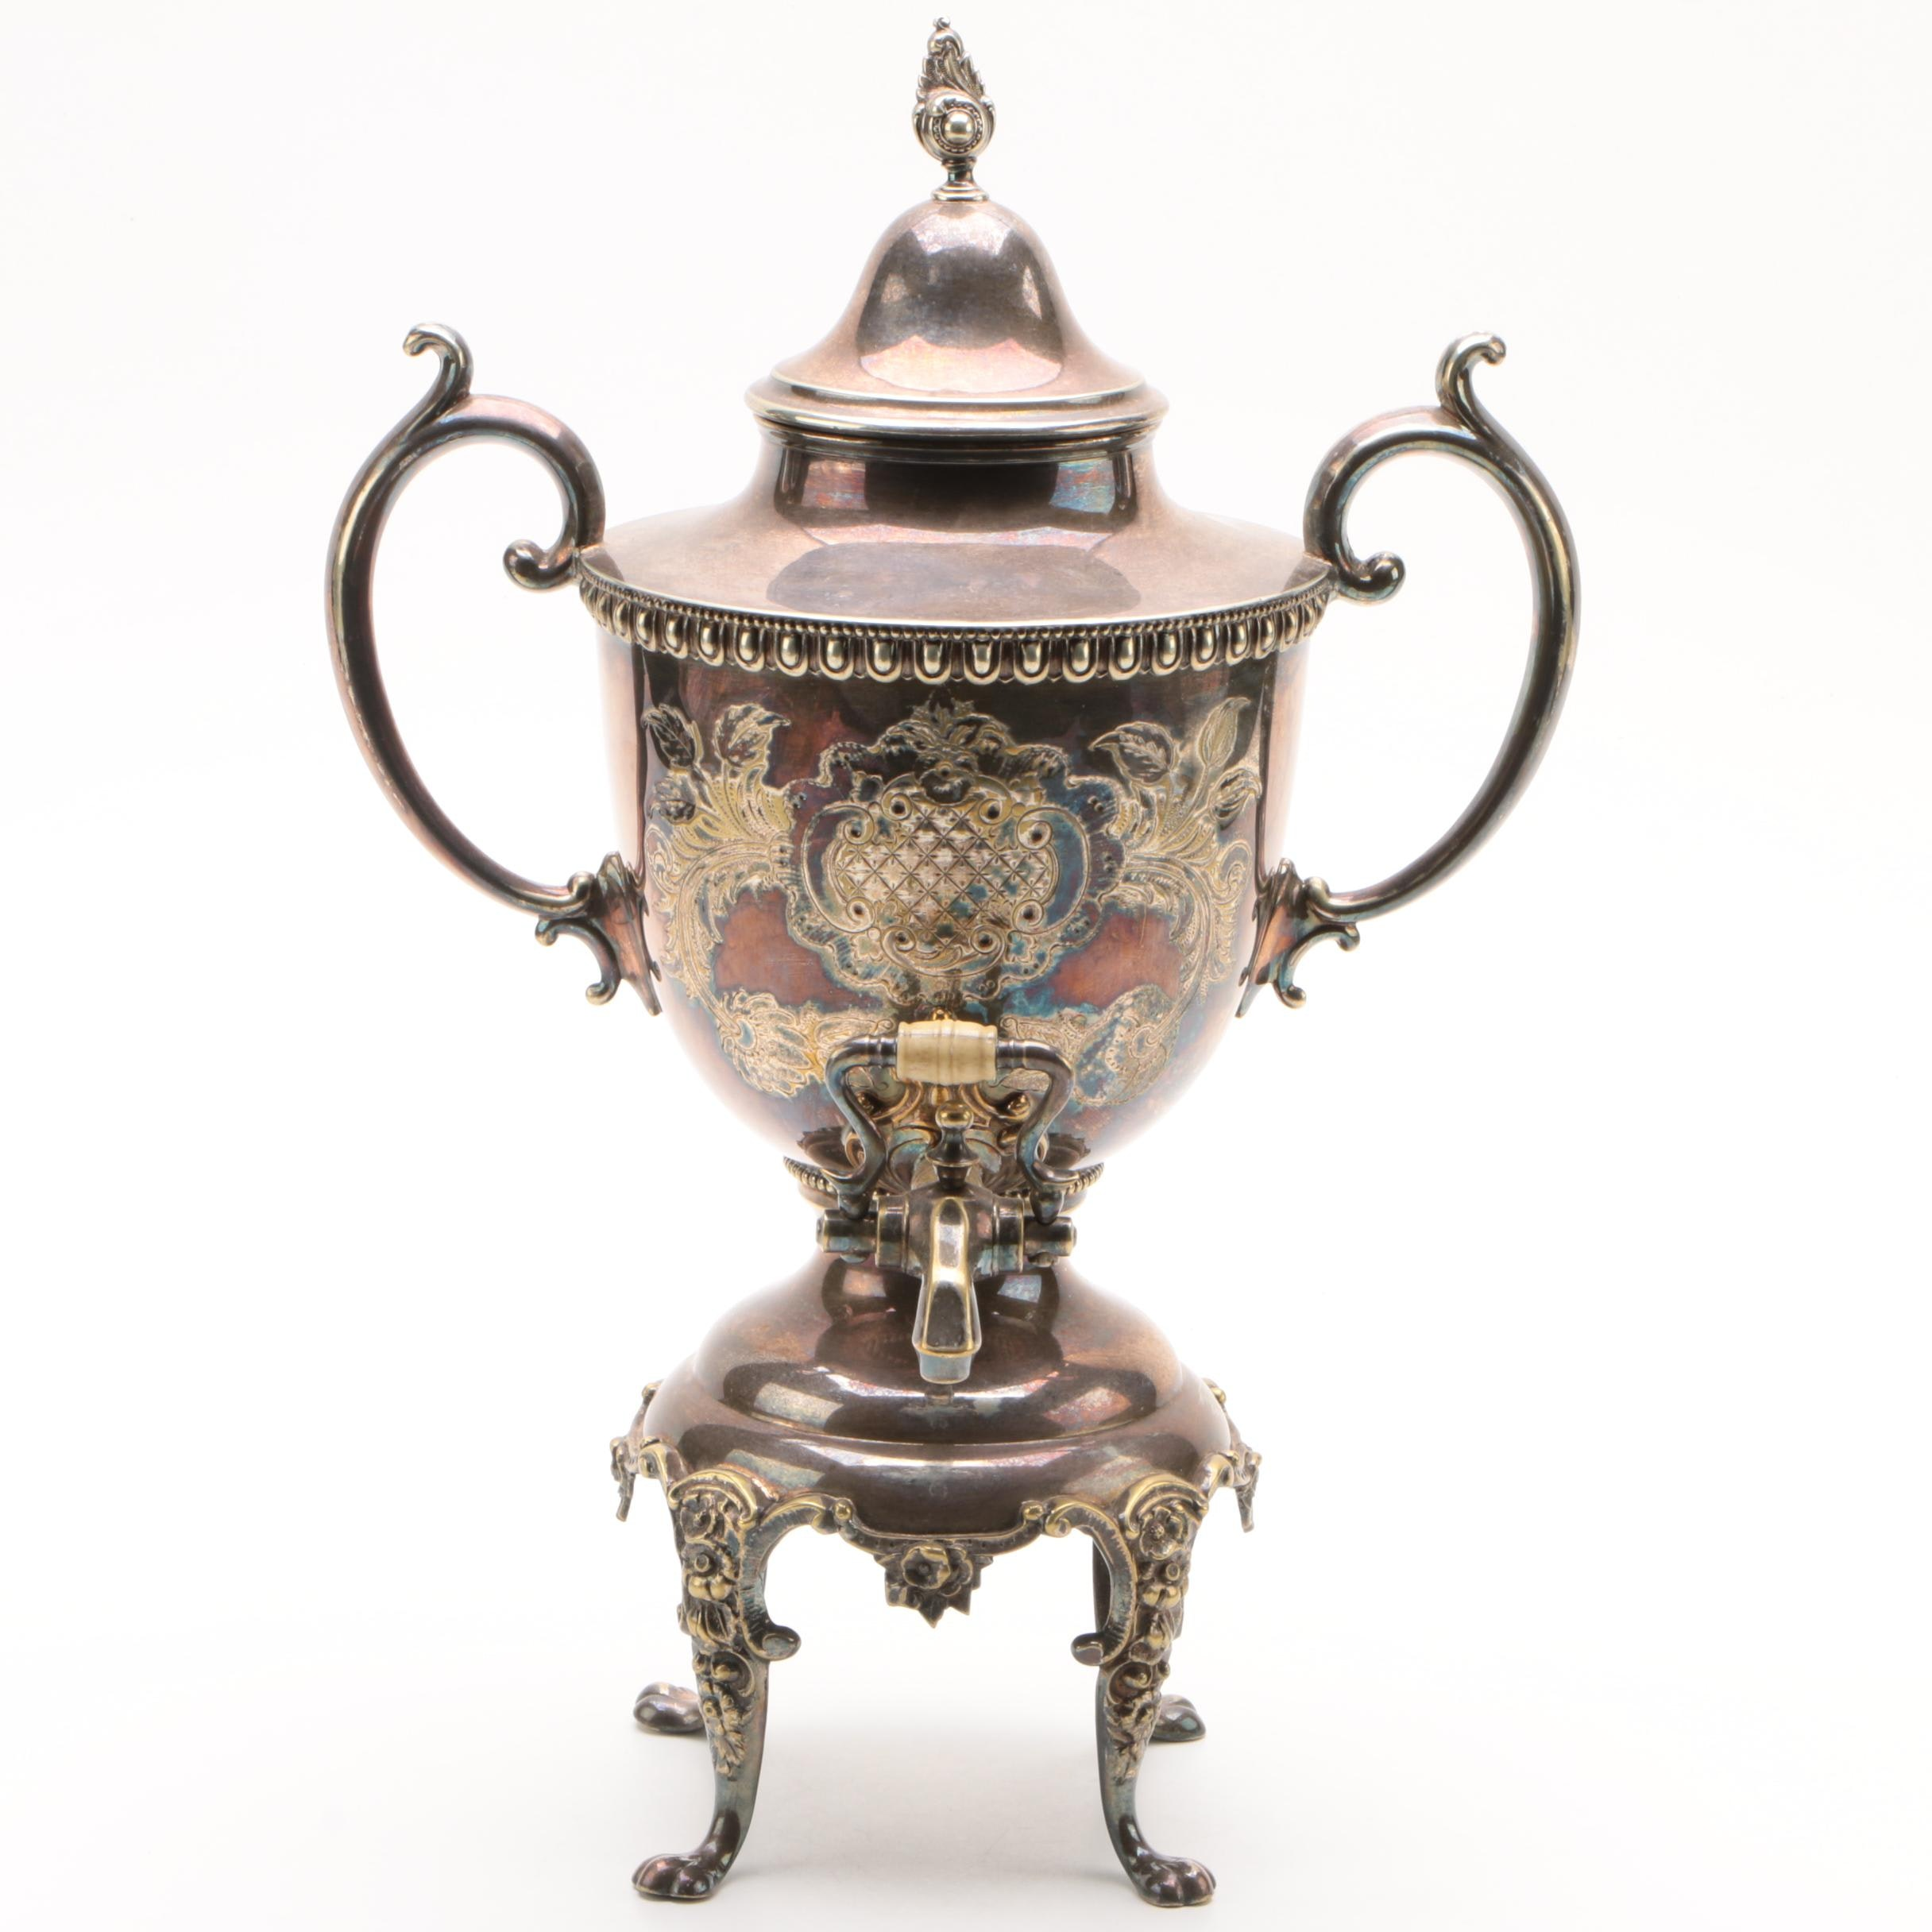 Silver-Plated Brass Samovar, Early 20th Century